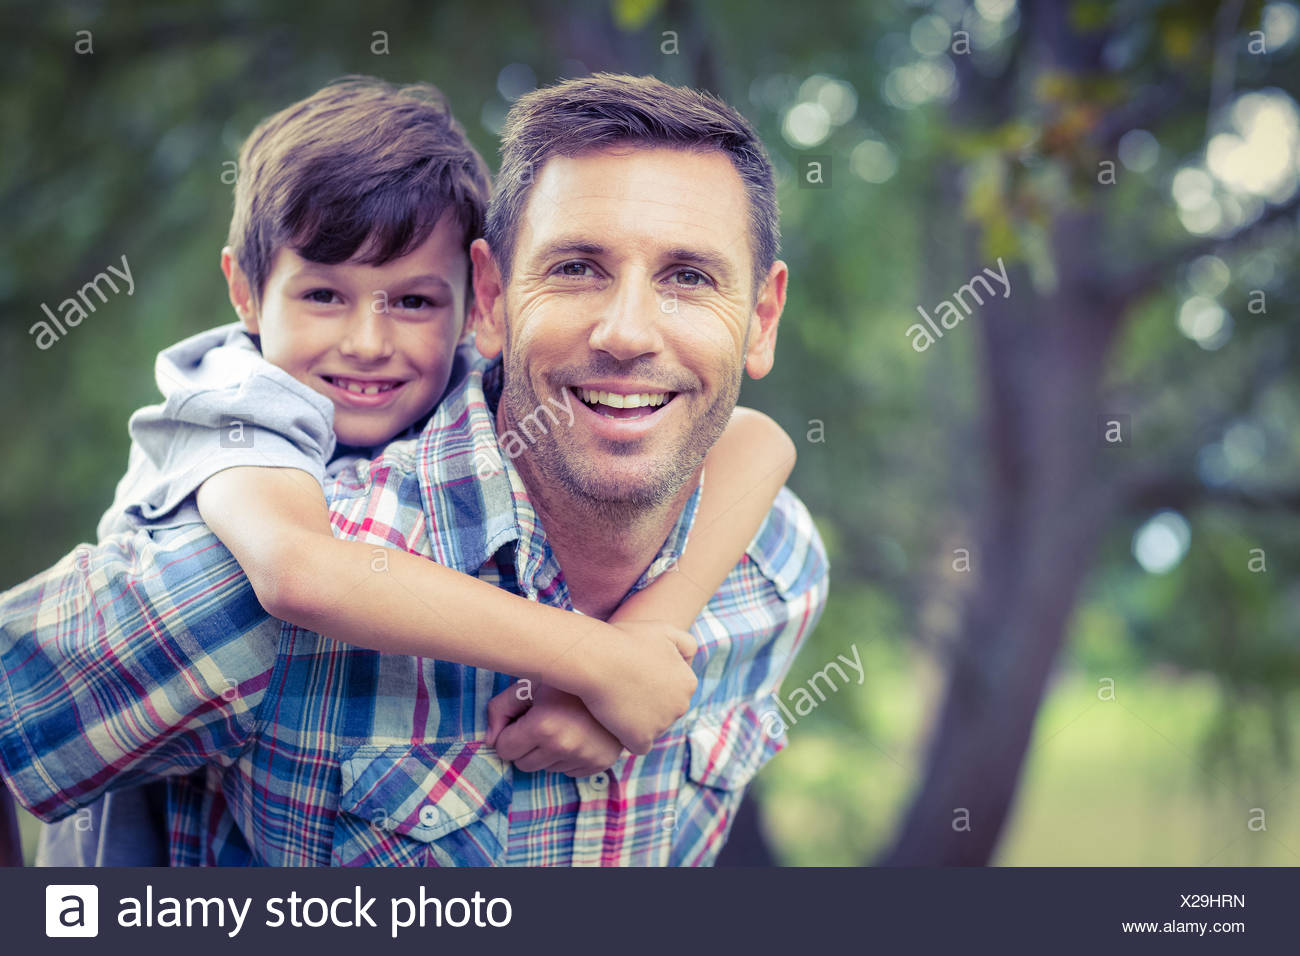 Child playing with his father - Stock Image